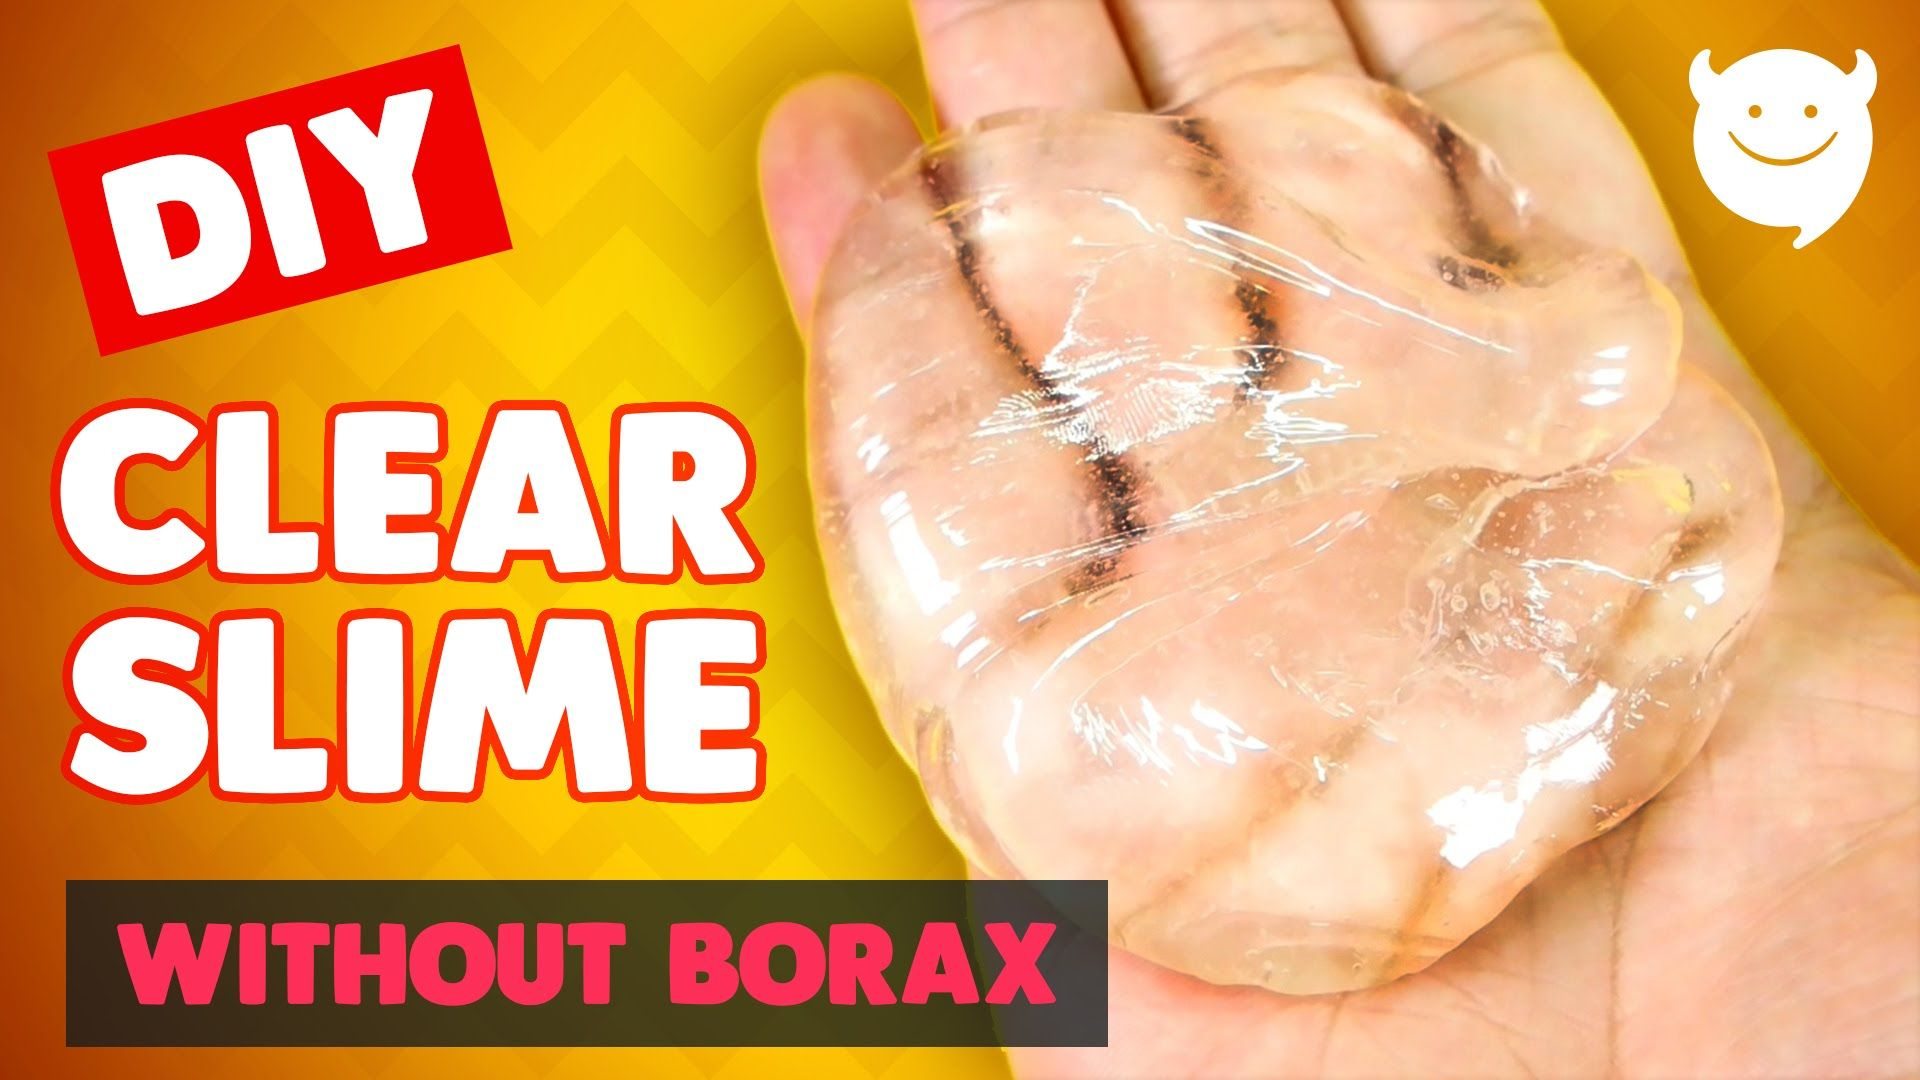 How to make jelly clear slime without borax diy liquid glass how to make jelly clear slime without borax diy liquid glass clay slime ccuart Image collections